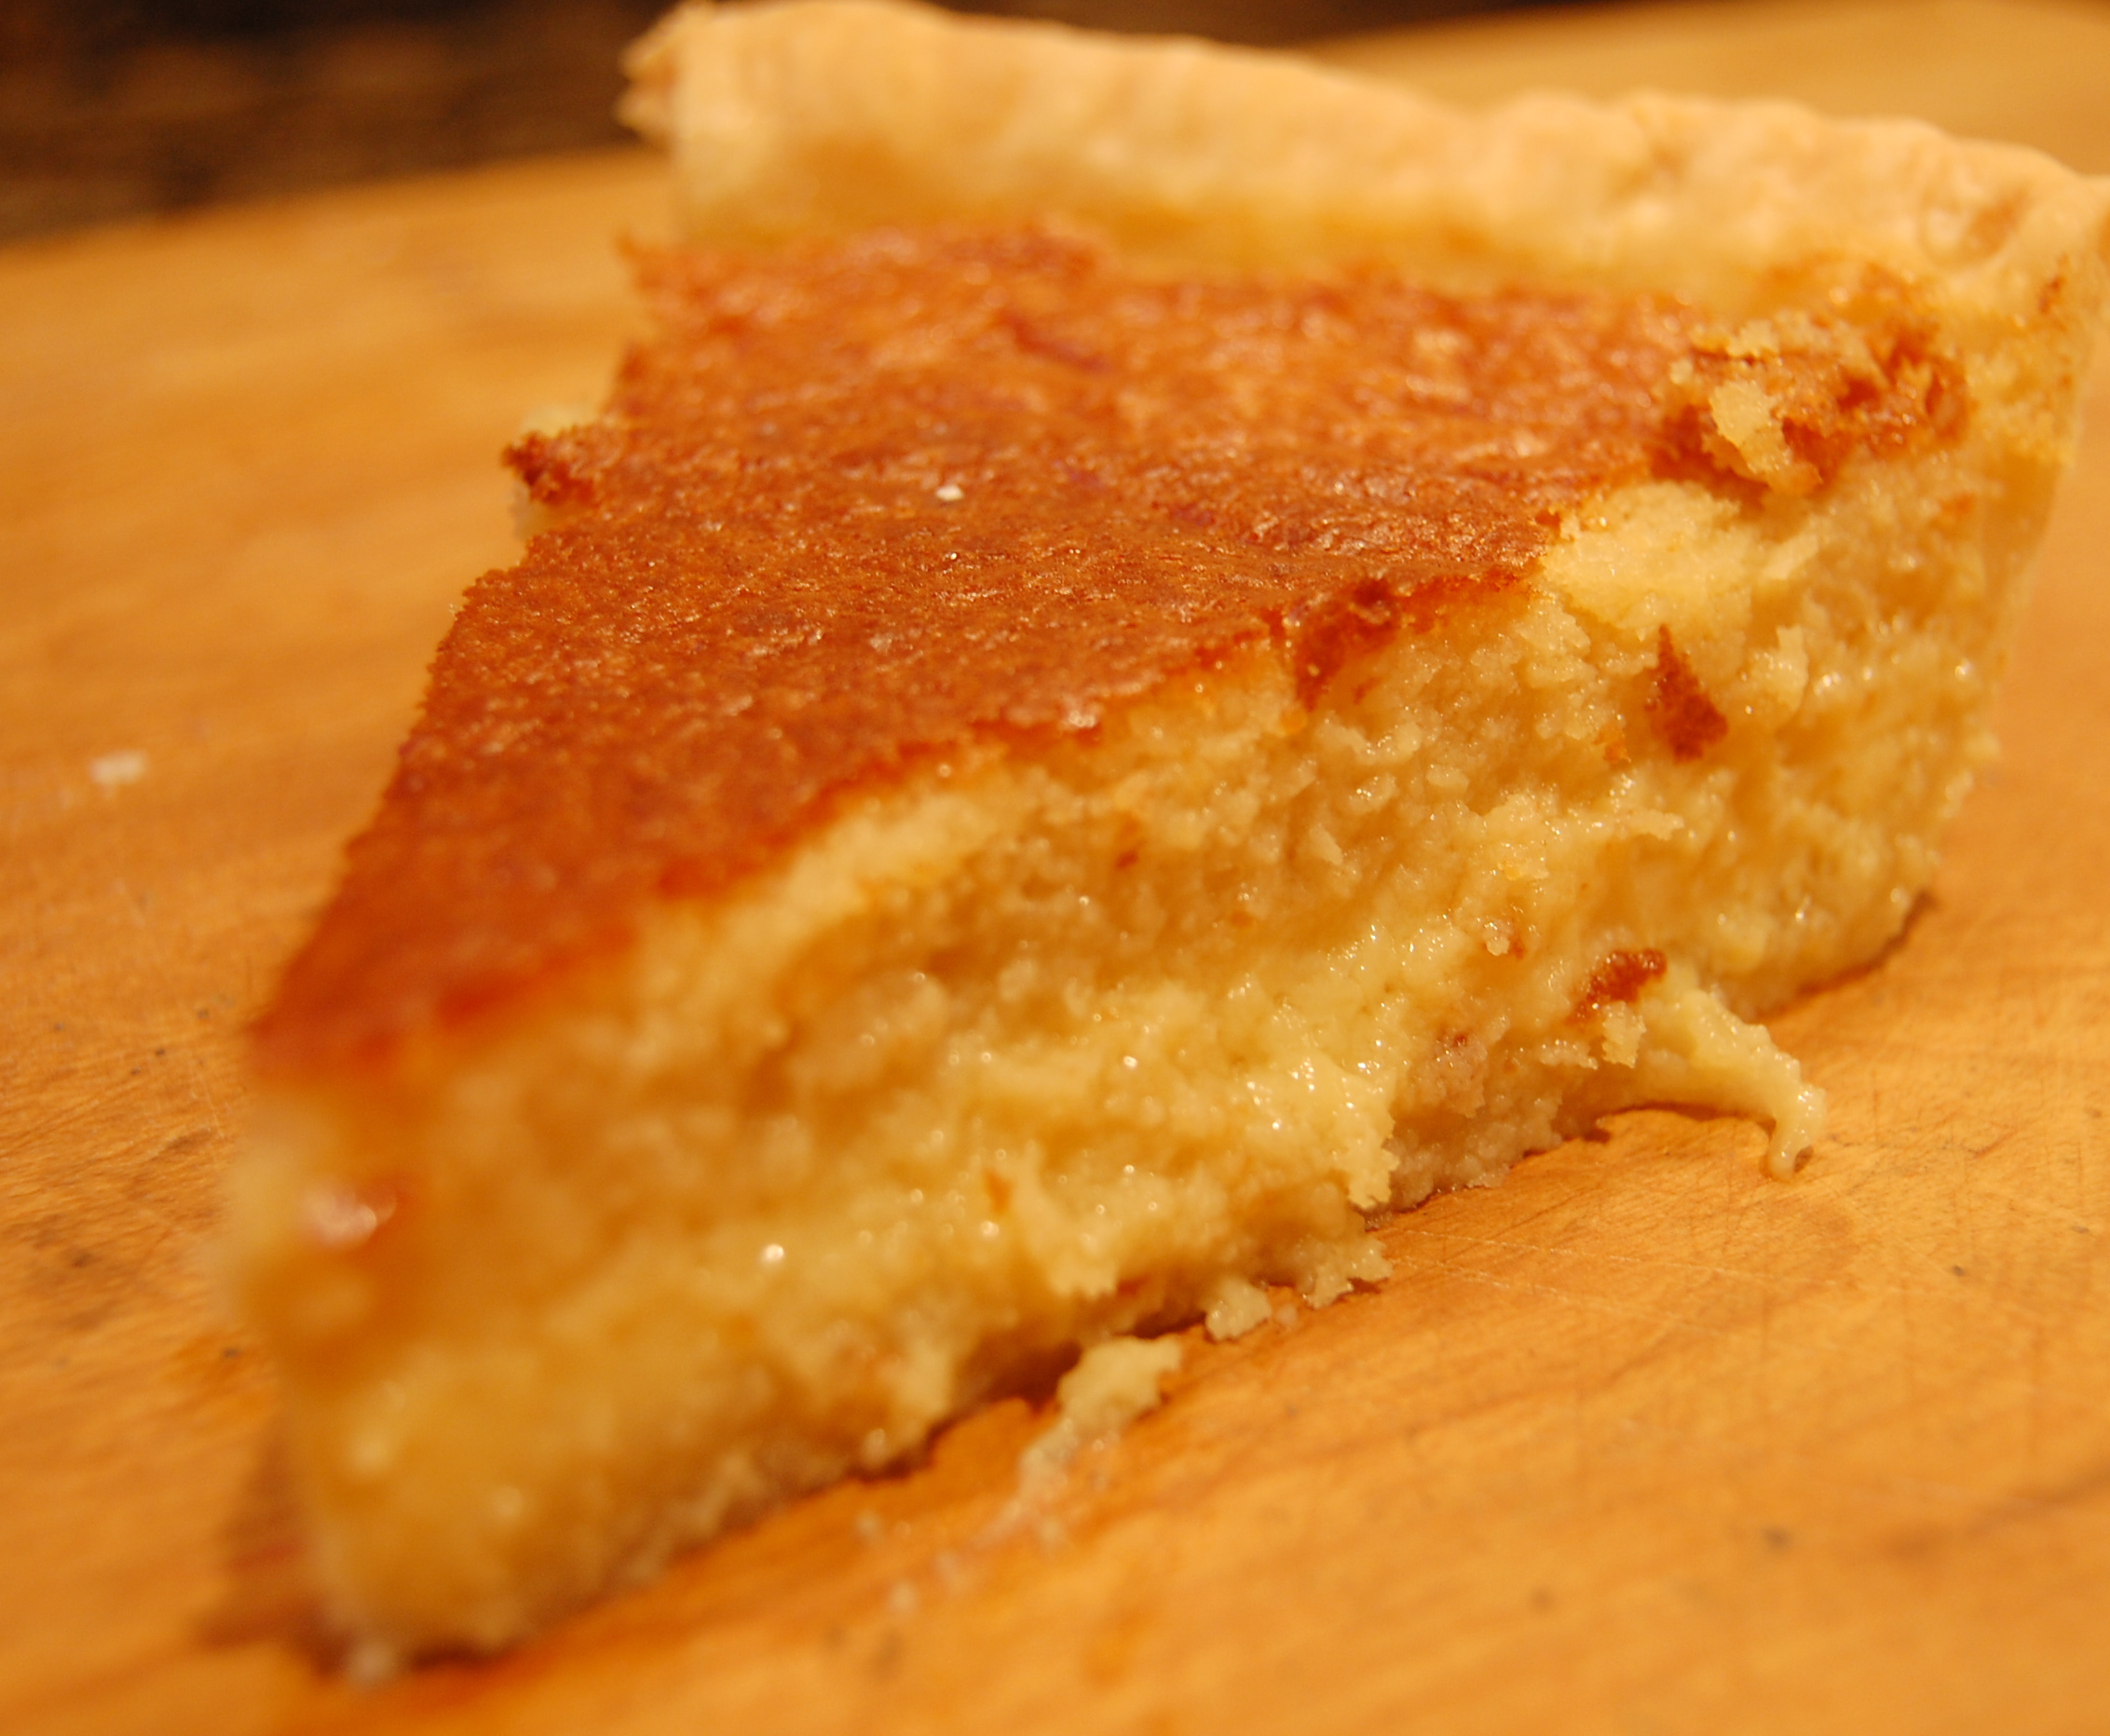 maple buttermilk pie buttermilk pie buttermilk pie maple buttermilk ...